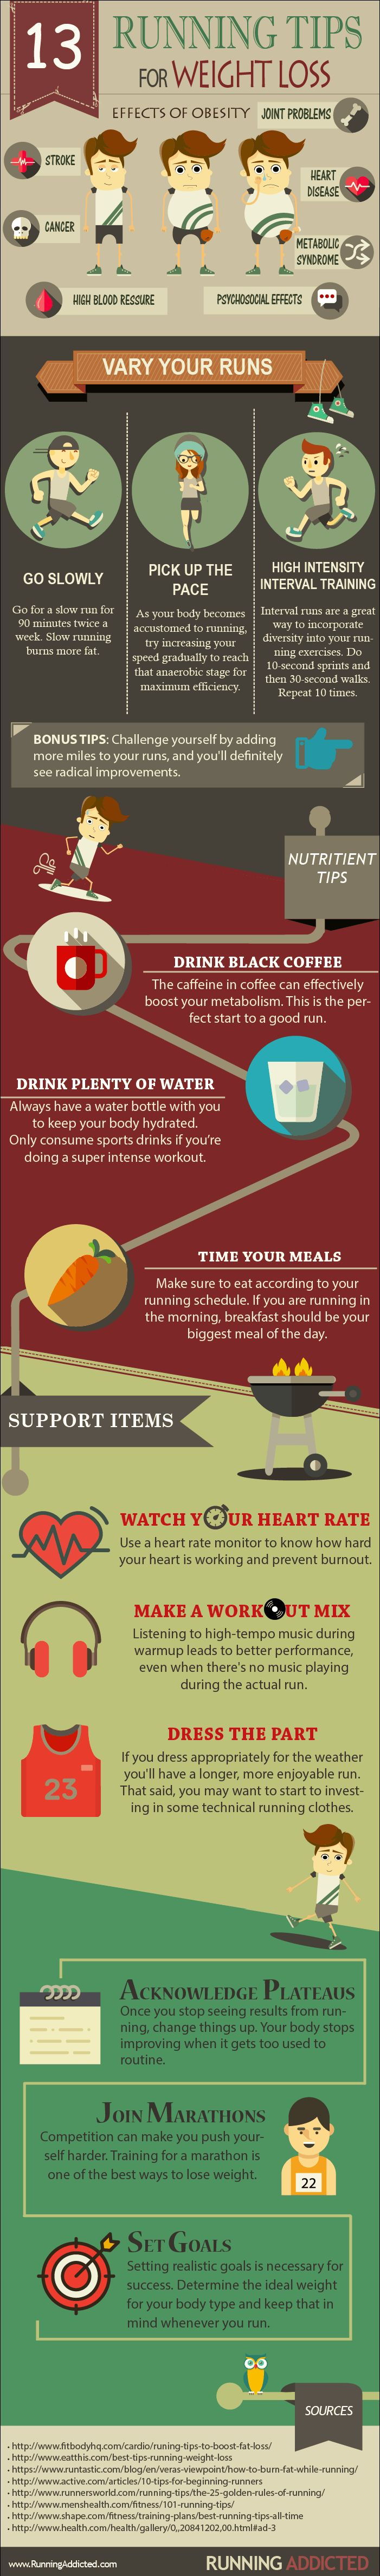 Weight-Loss Hacks: Running Correctly - Infographic